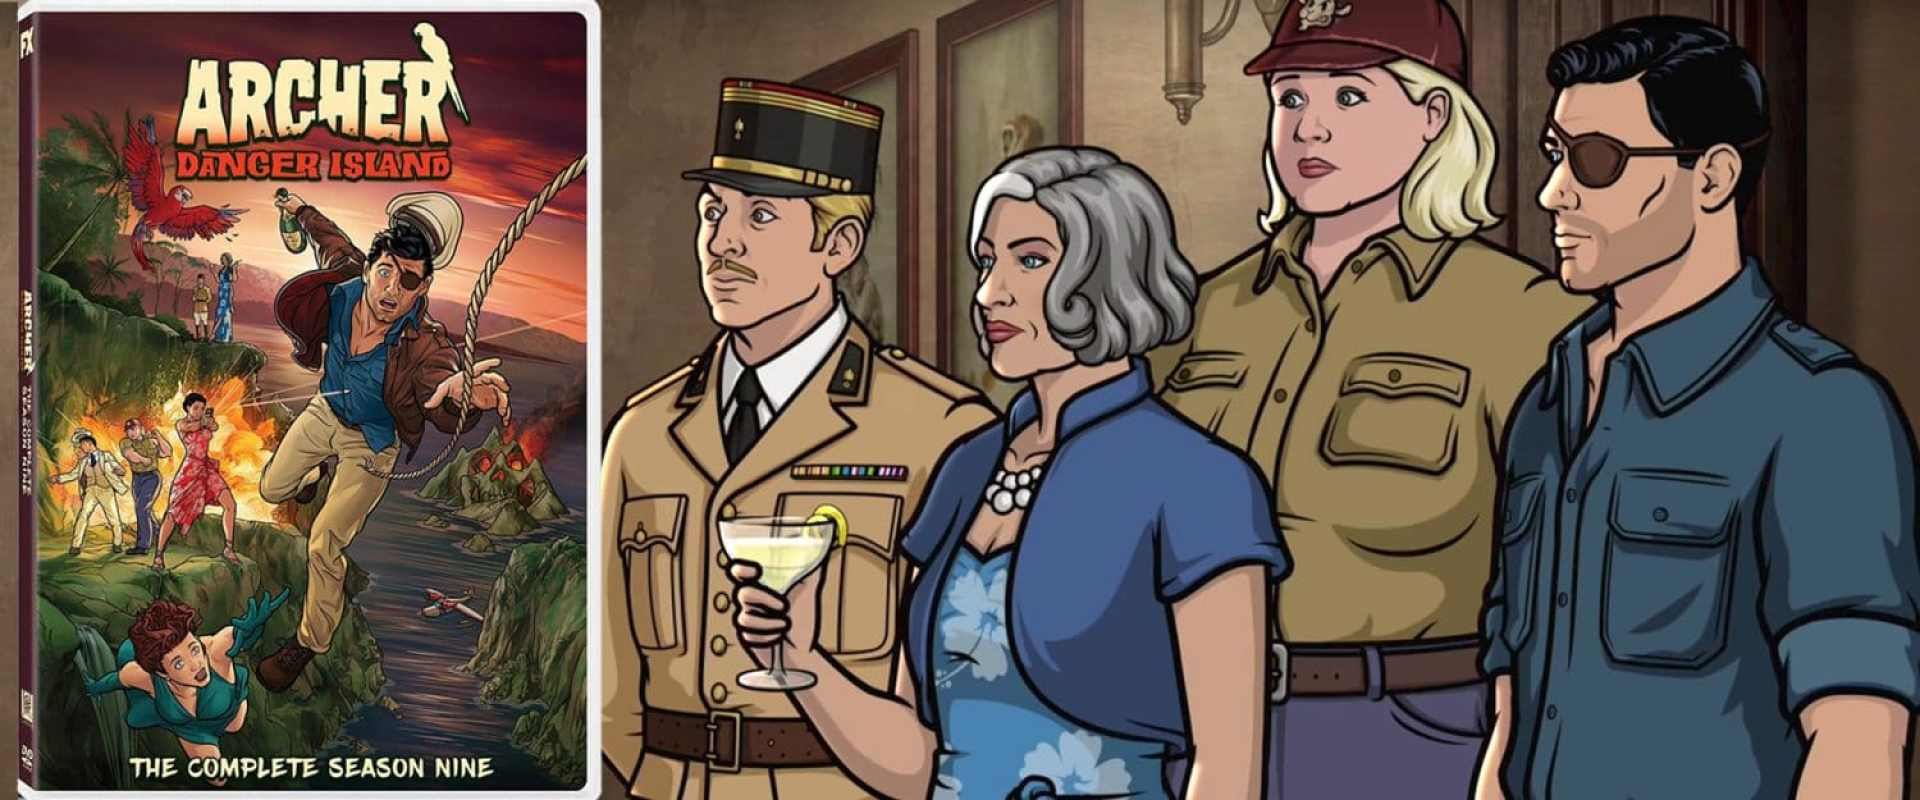 Thrills continue on Archer: Danger Island, now available on DVD.